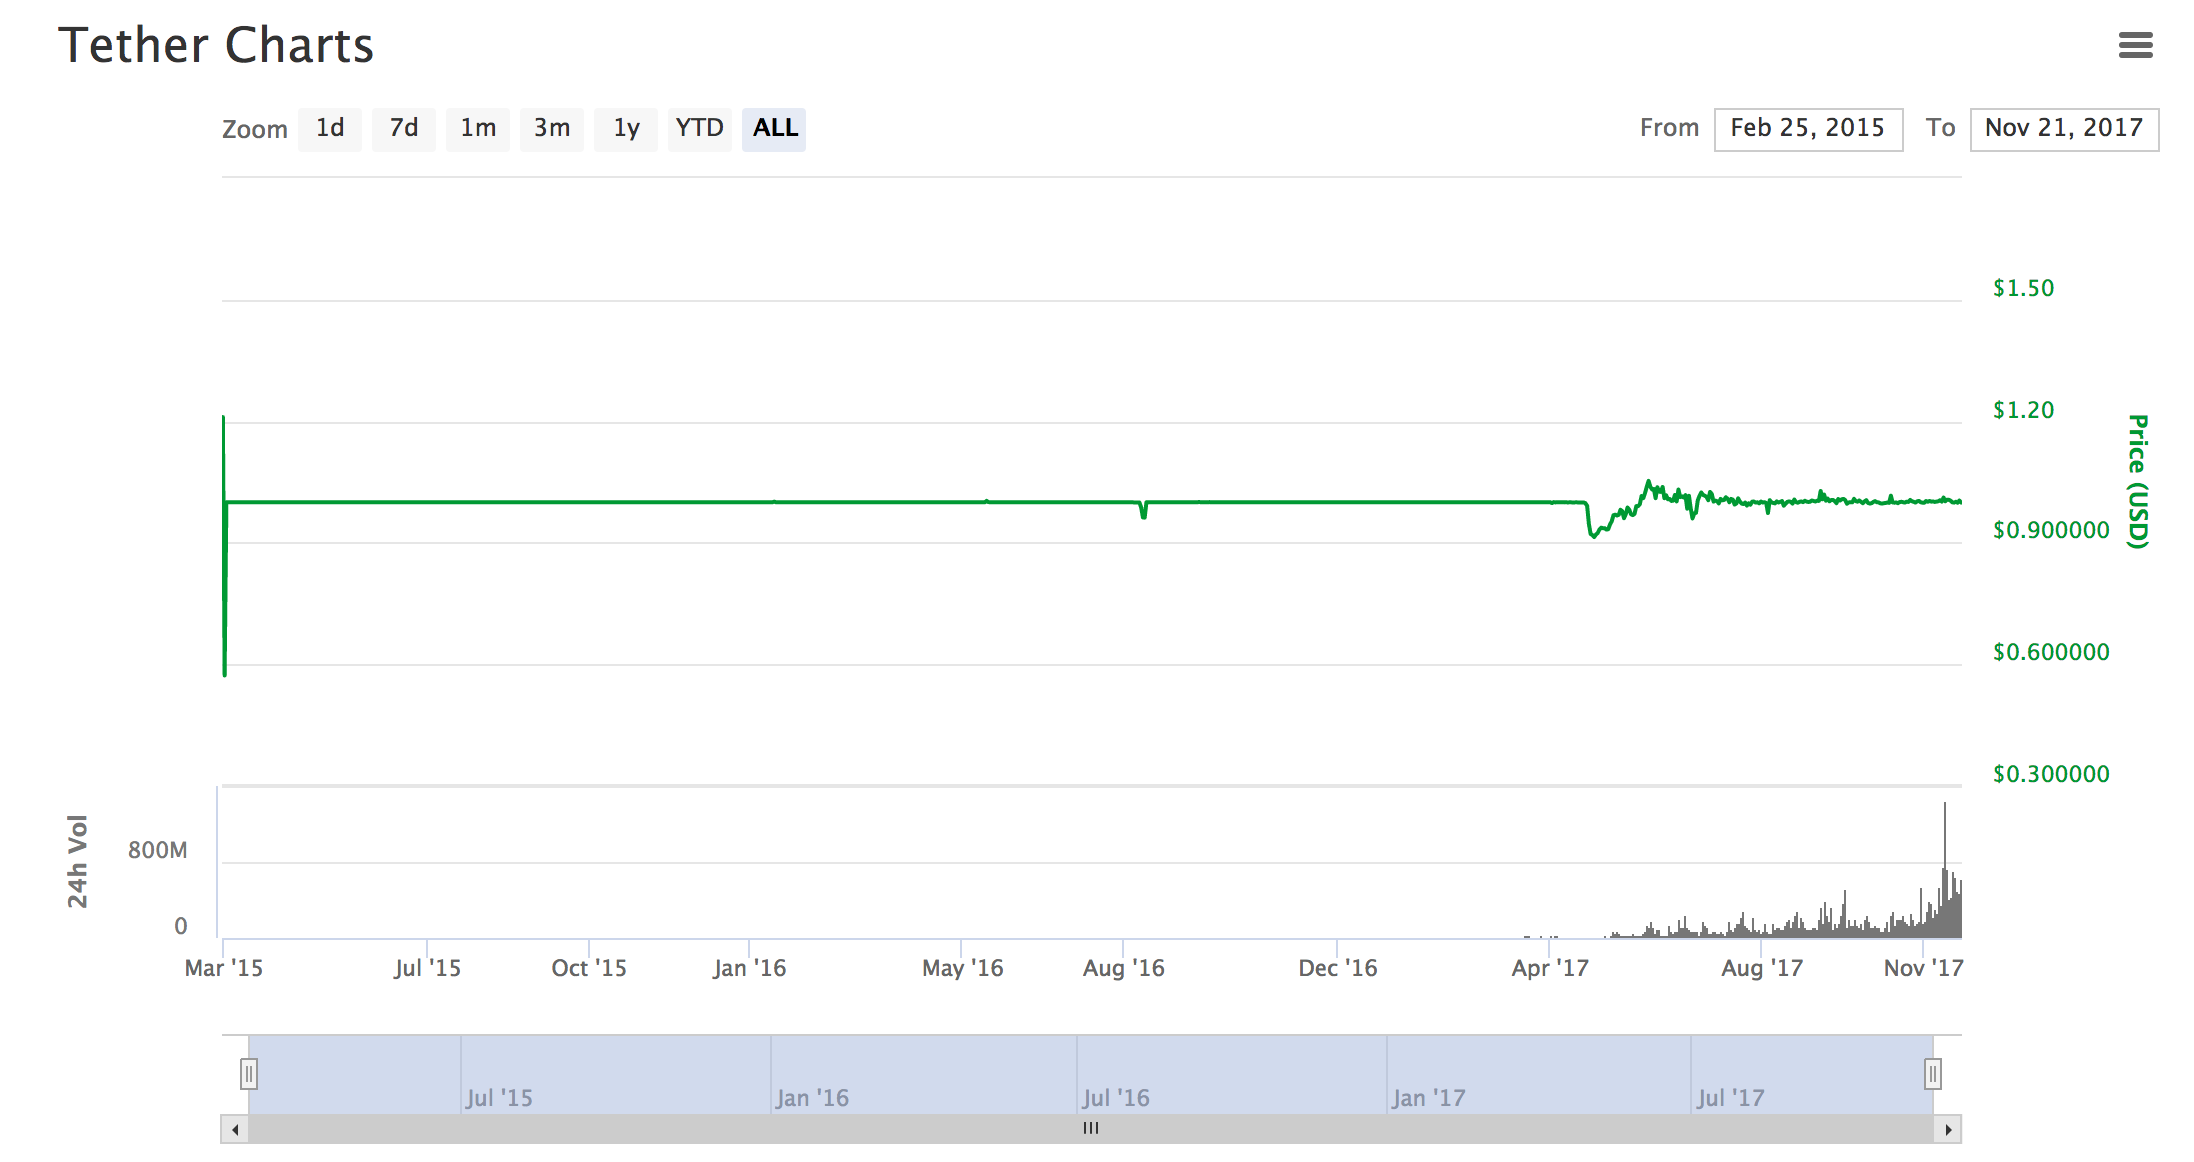 Tether price over time